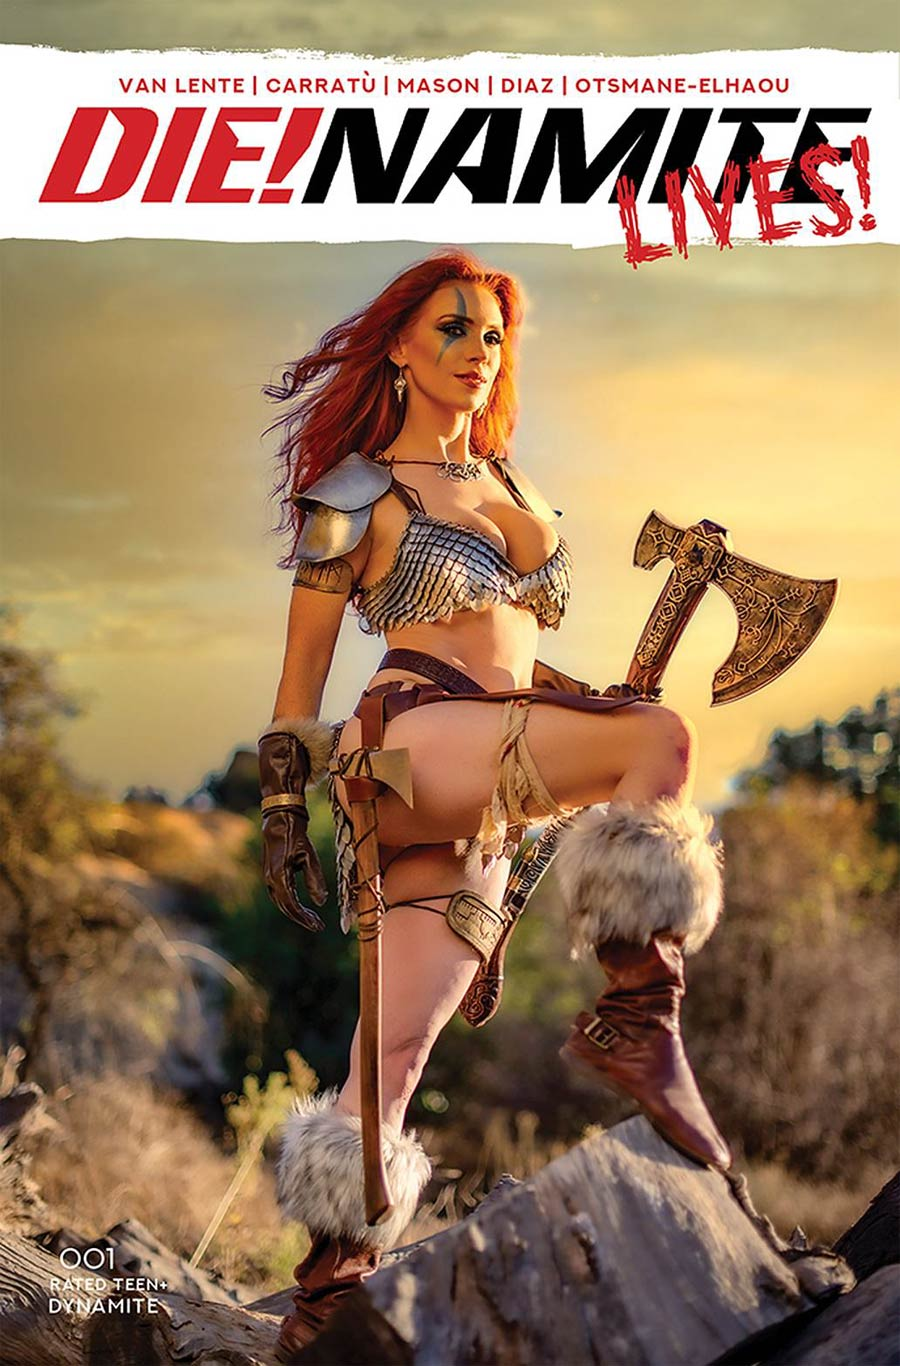 DieNamite Lives #1 Cover E Variant Gracie The Cosplay Lass Cosplay Photo Cover